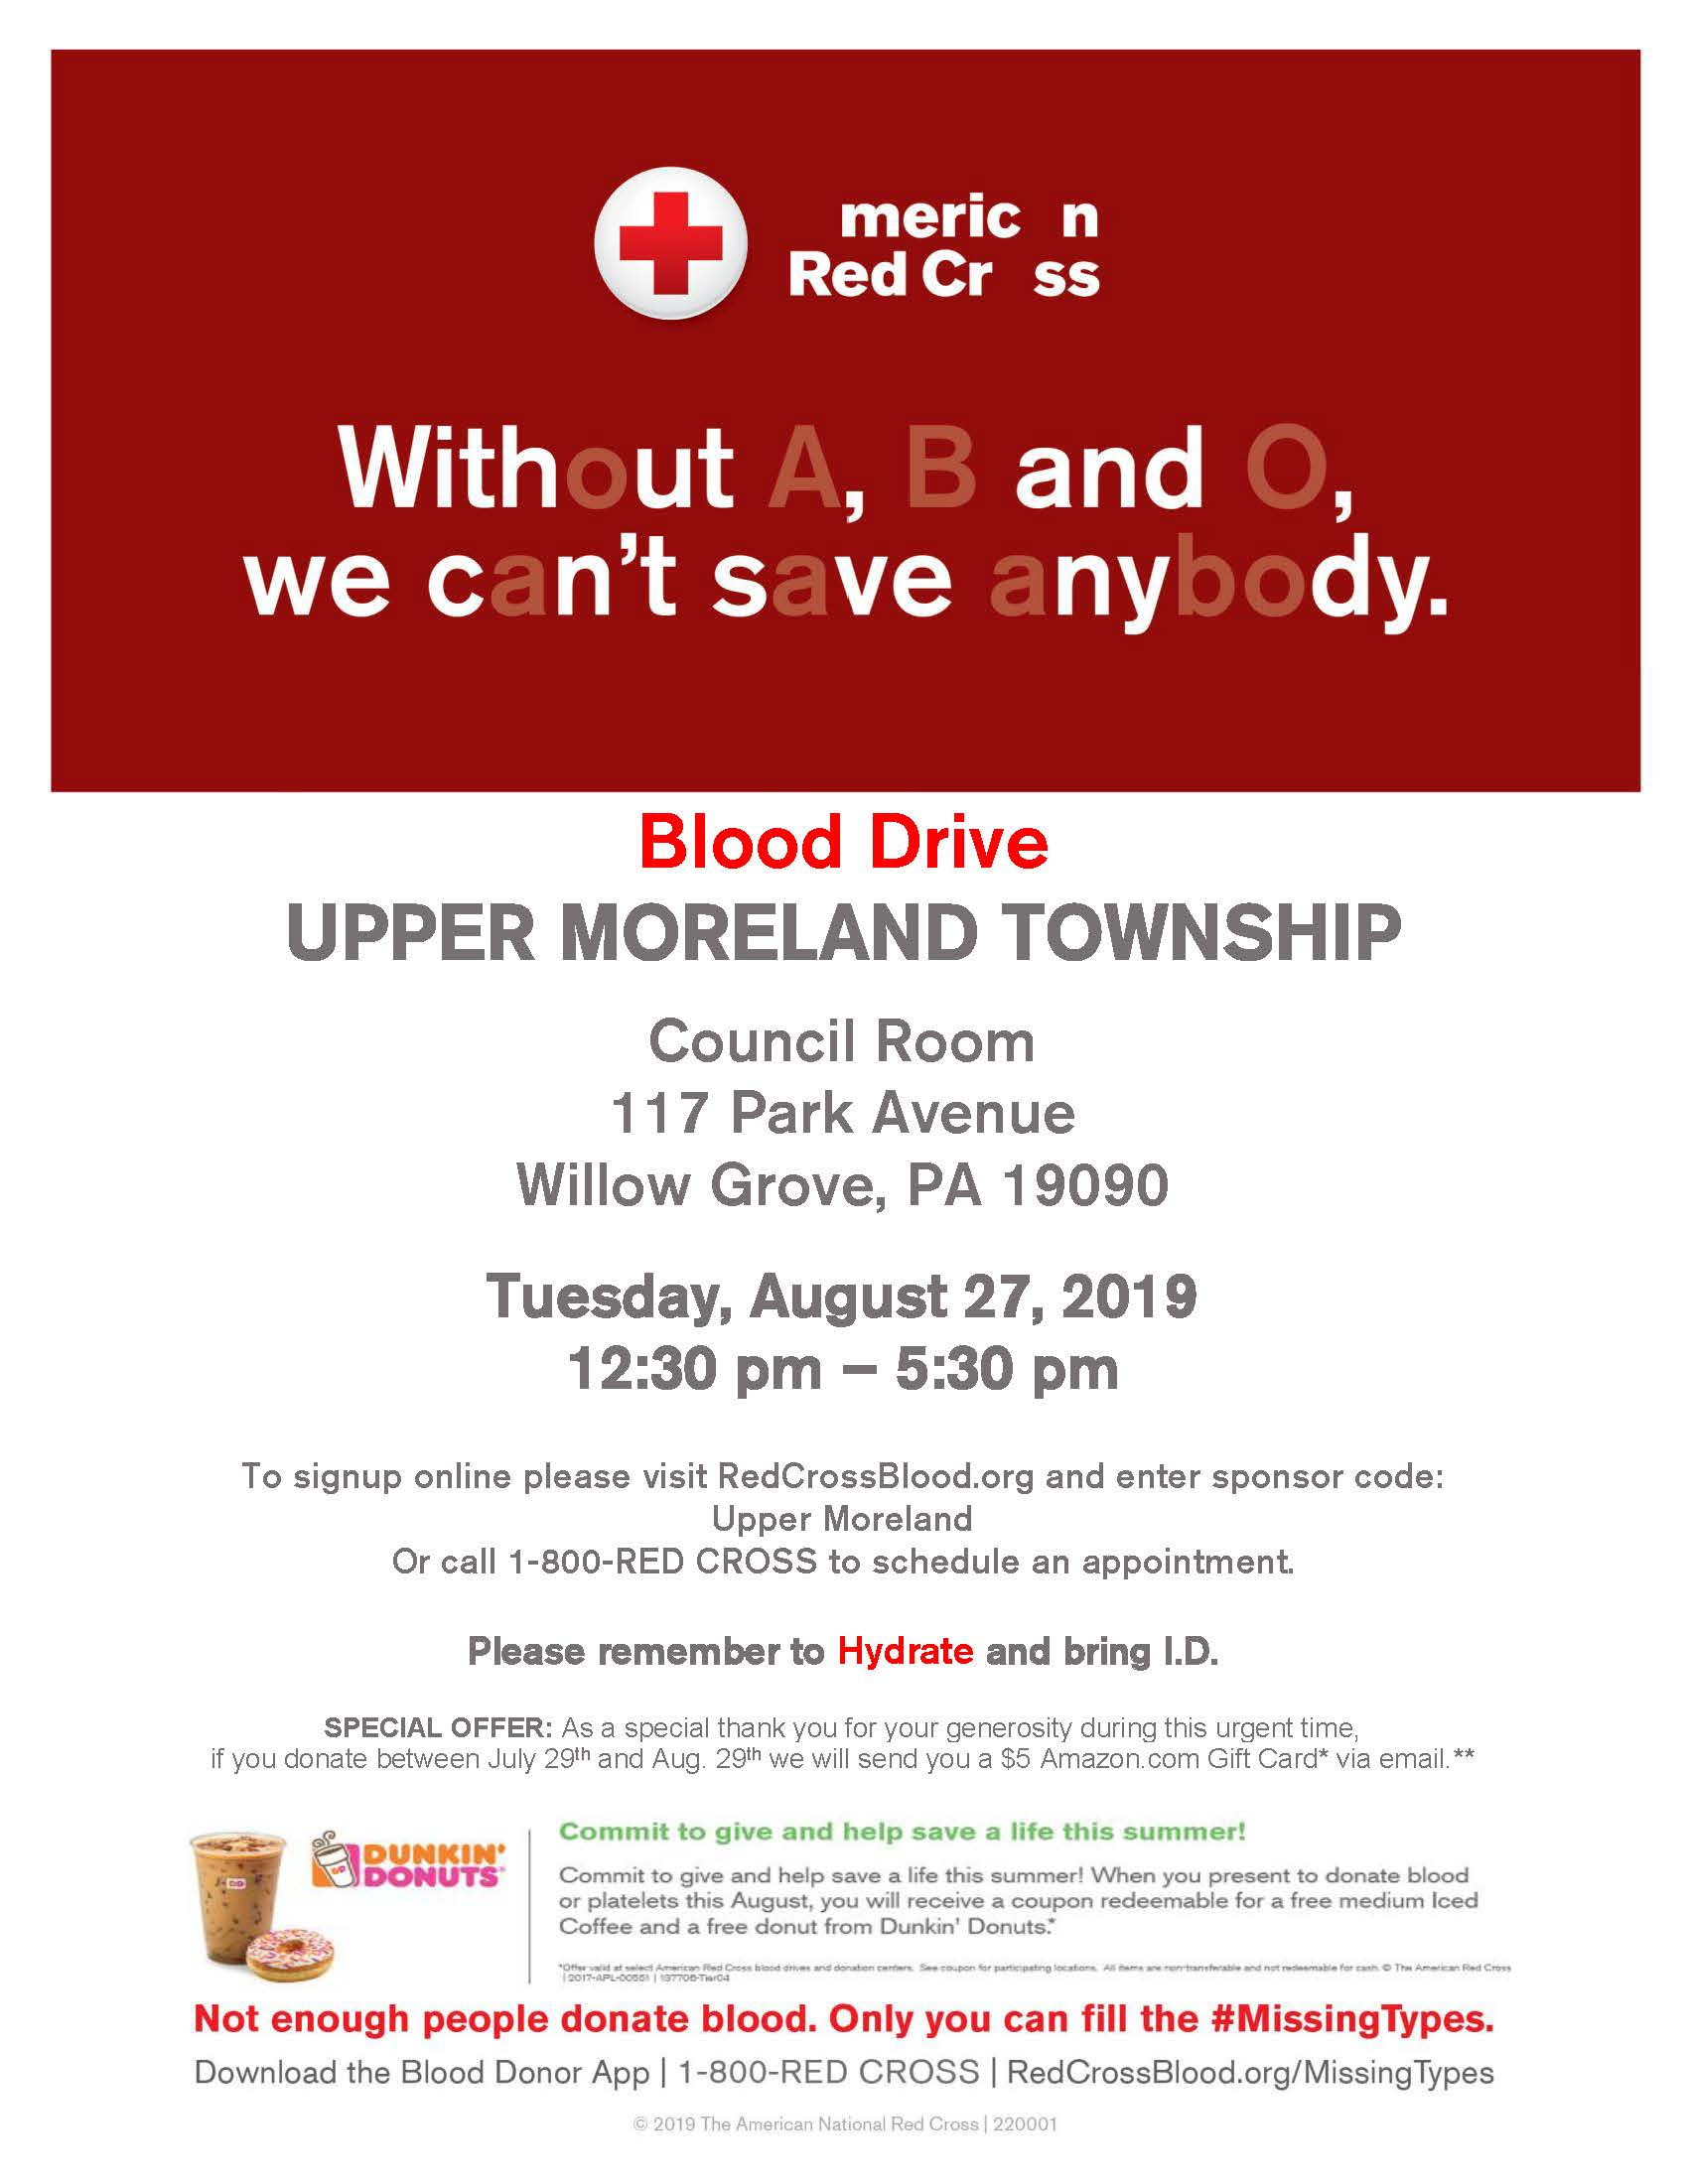 Upper Moreland Township Blood Drive